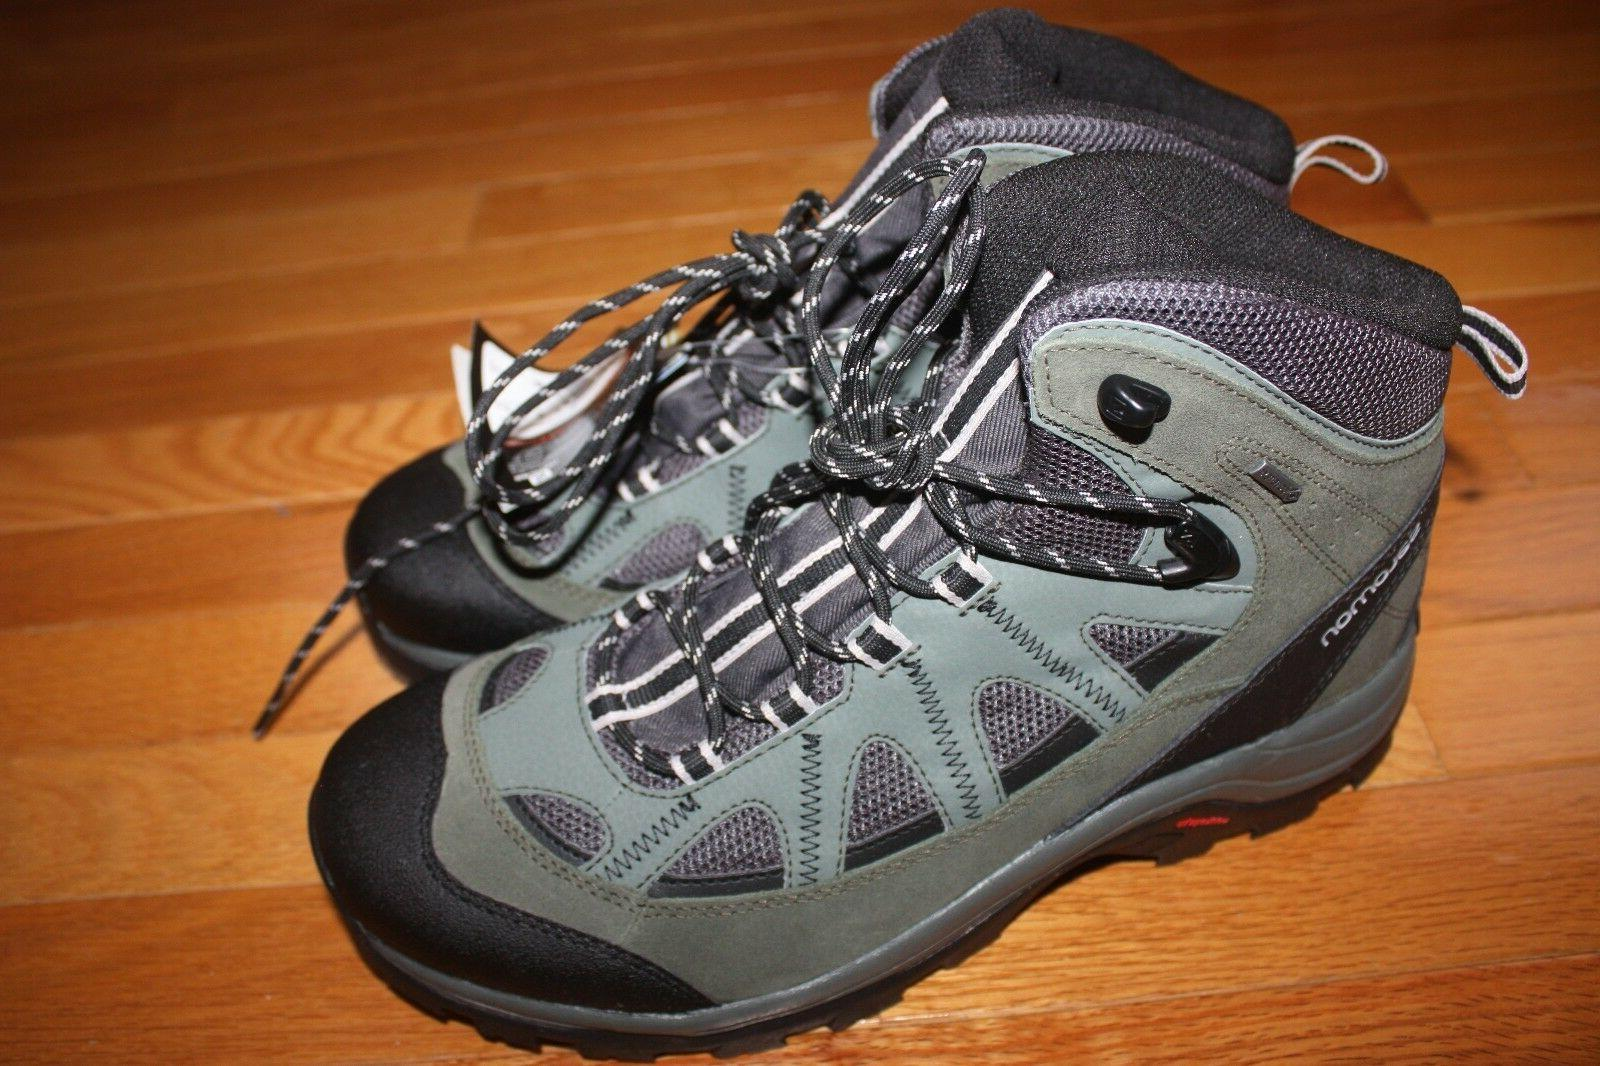 New In Box Men's Salomon Authentic LTR Backpacking US